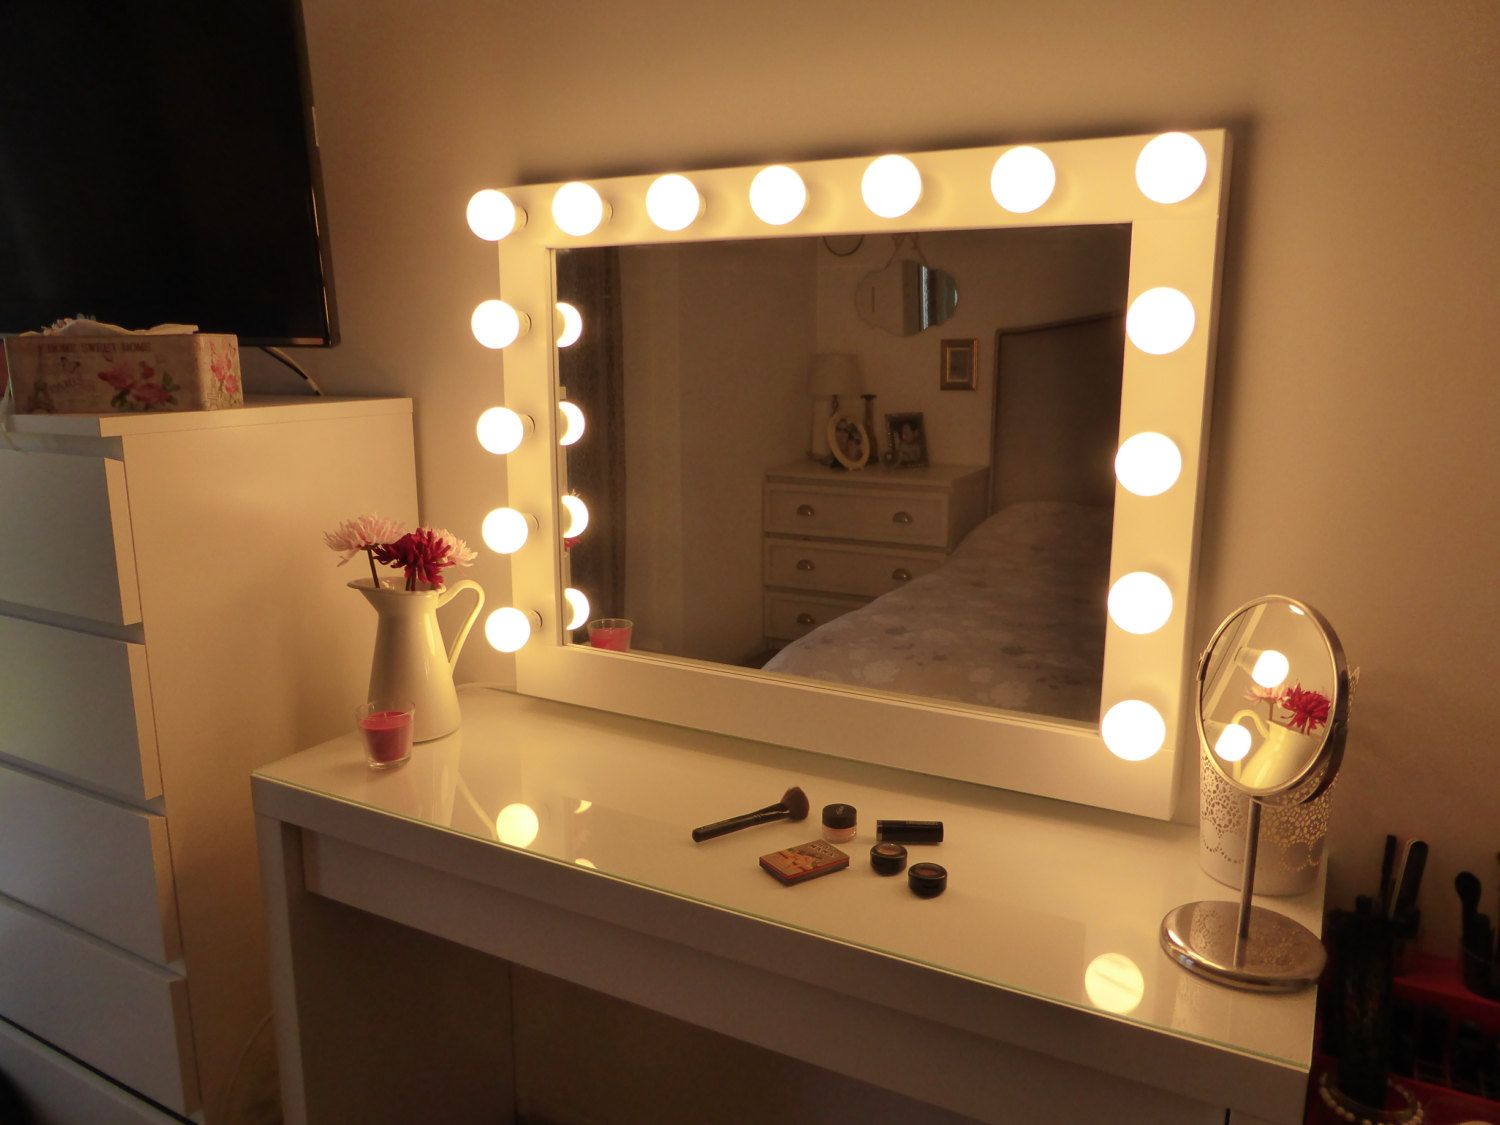 Vanity Mirror With Lights Wall : Hollywood lighted vanity mirror-large makeup mirror with lights-Wall hanging/free standing ...